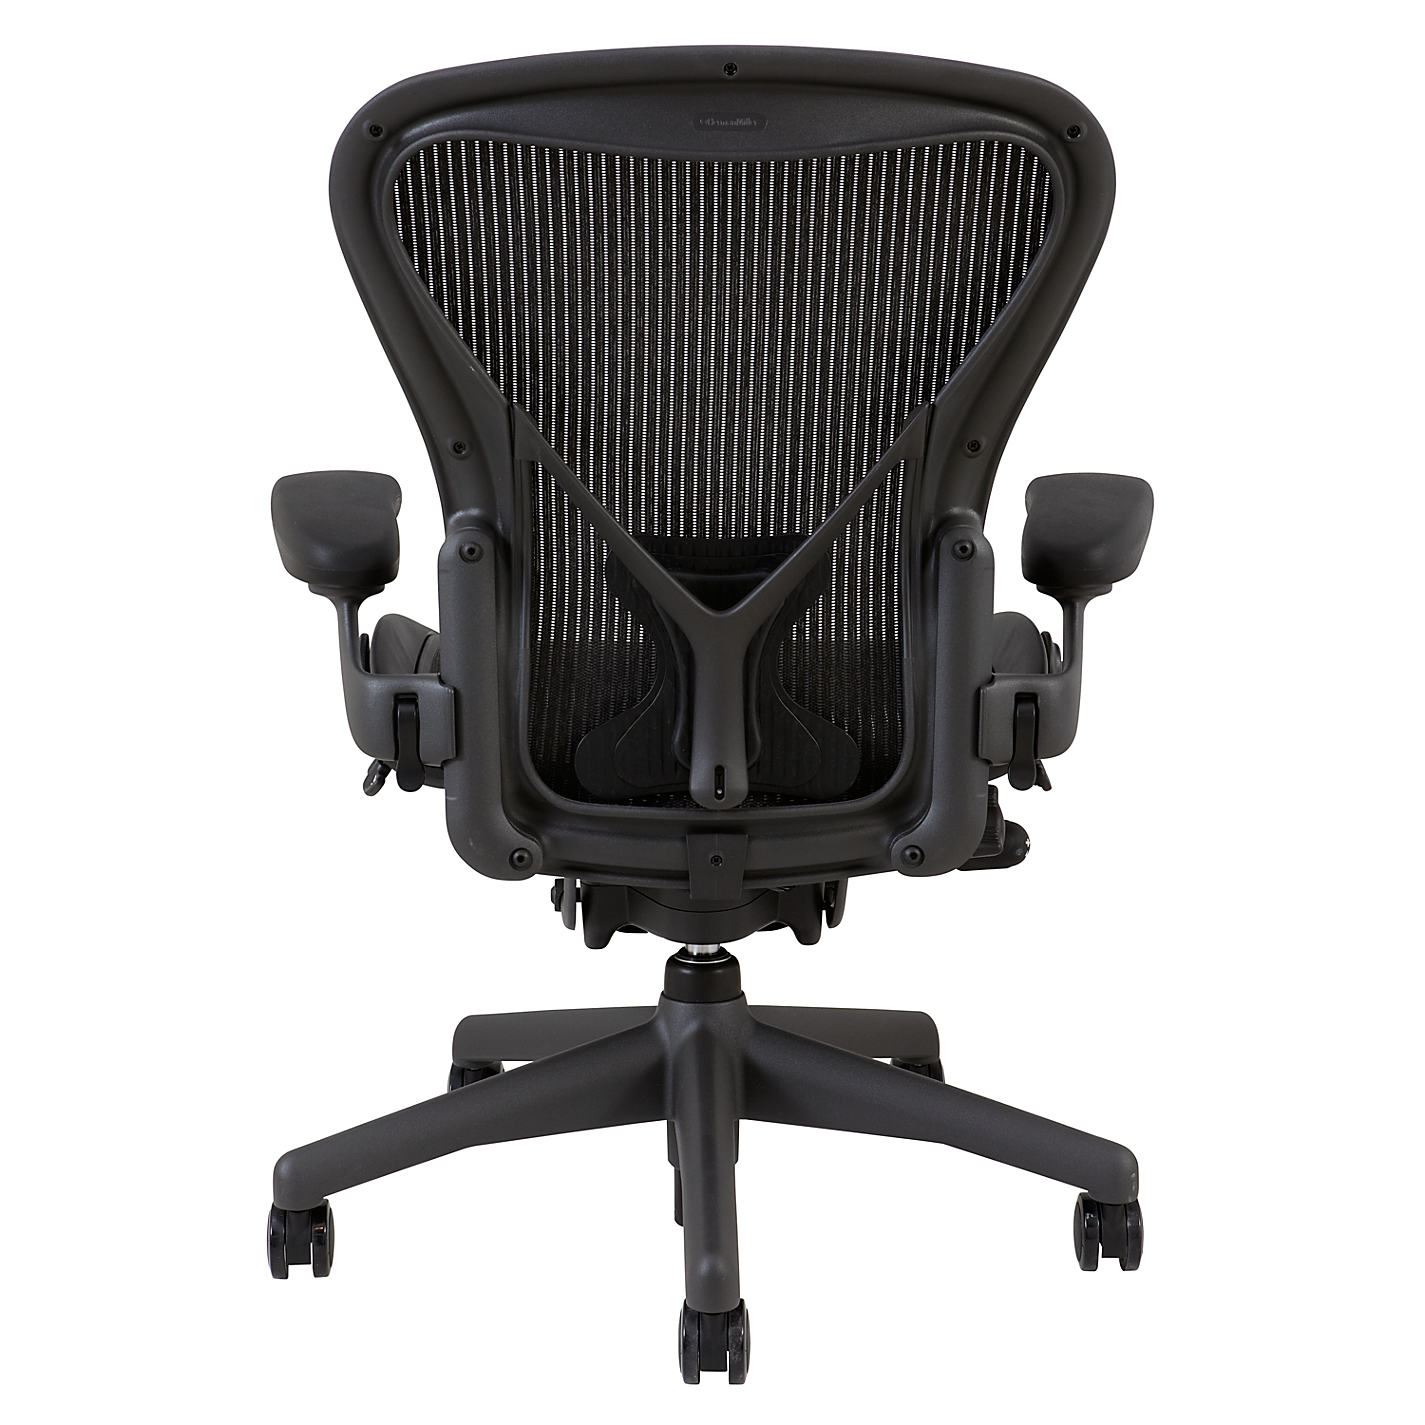 herman ergonomic miller aer assembled office chair furniture reconditioned shop chairs ph aeron atwork canada task